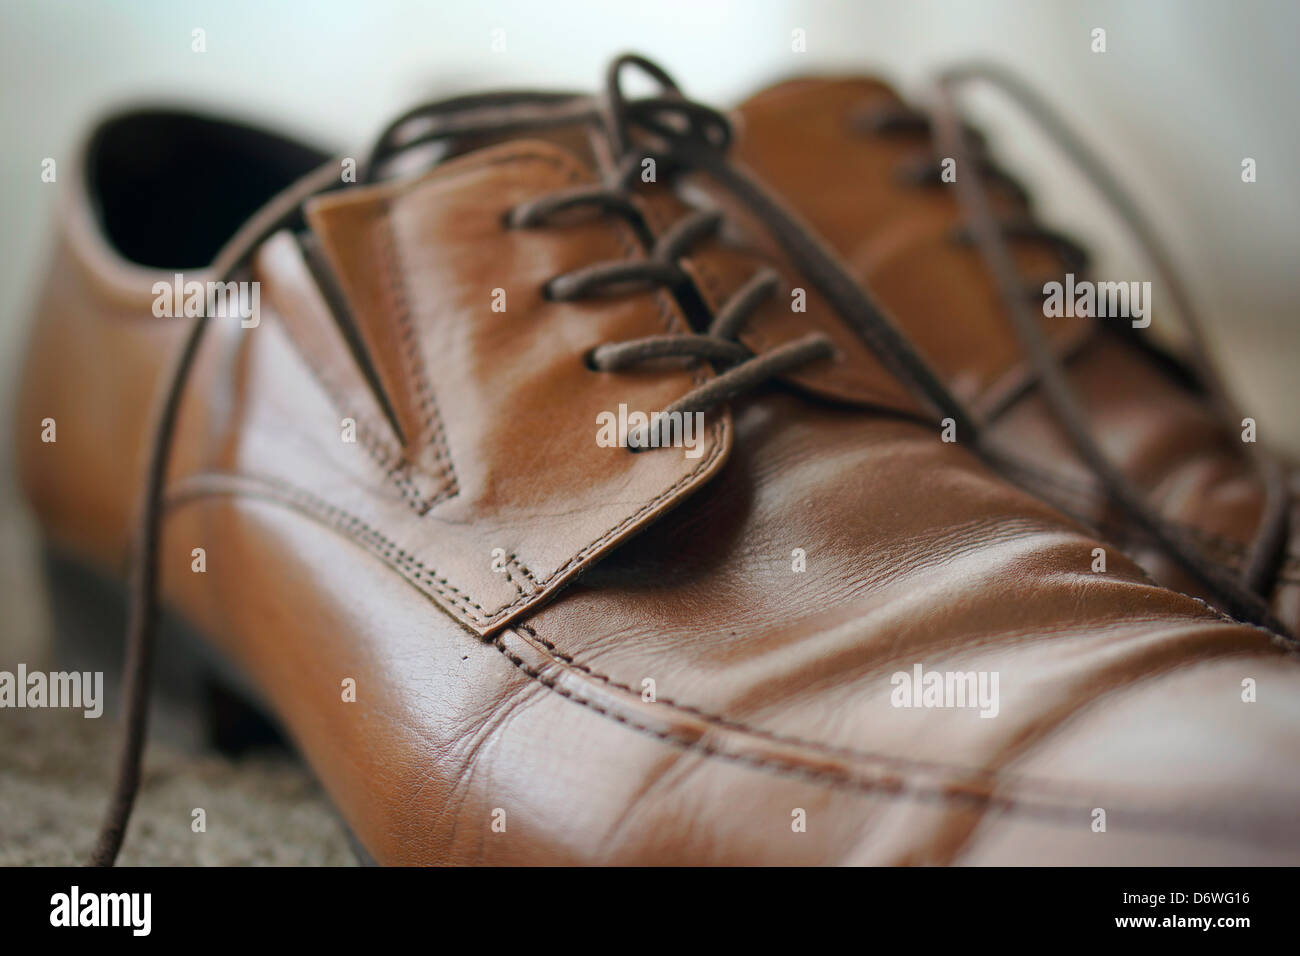 Men's Shoes, Brown Leather with Laces - Stock Image